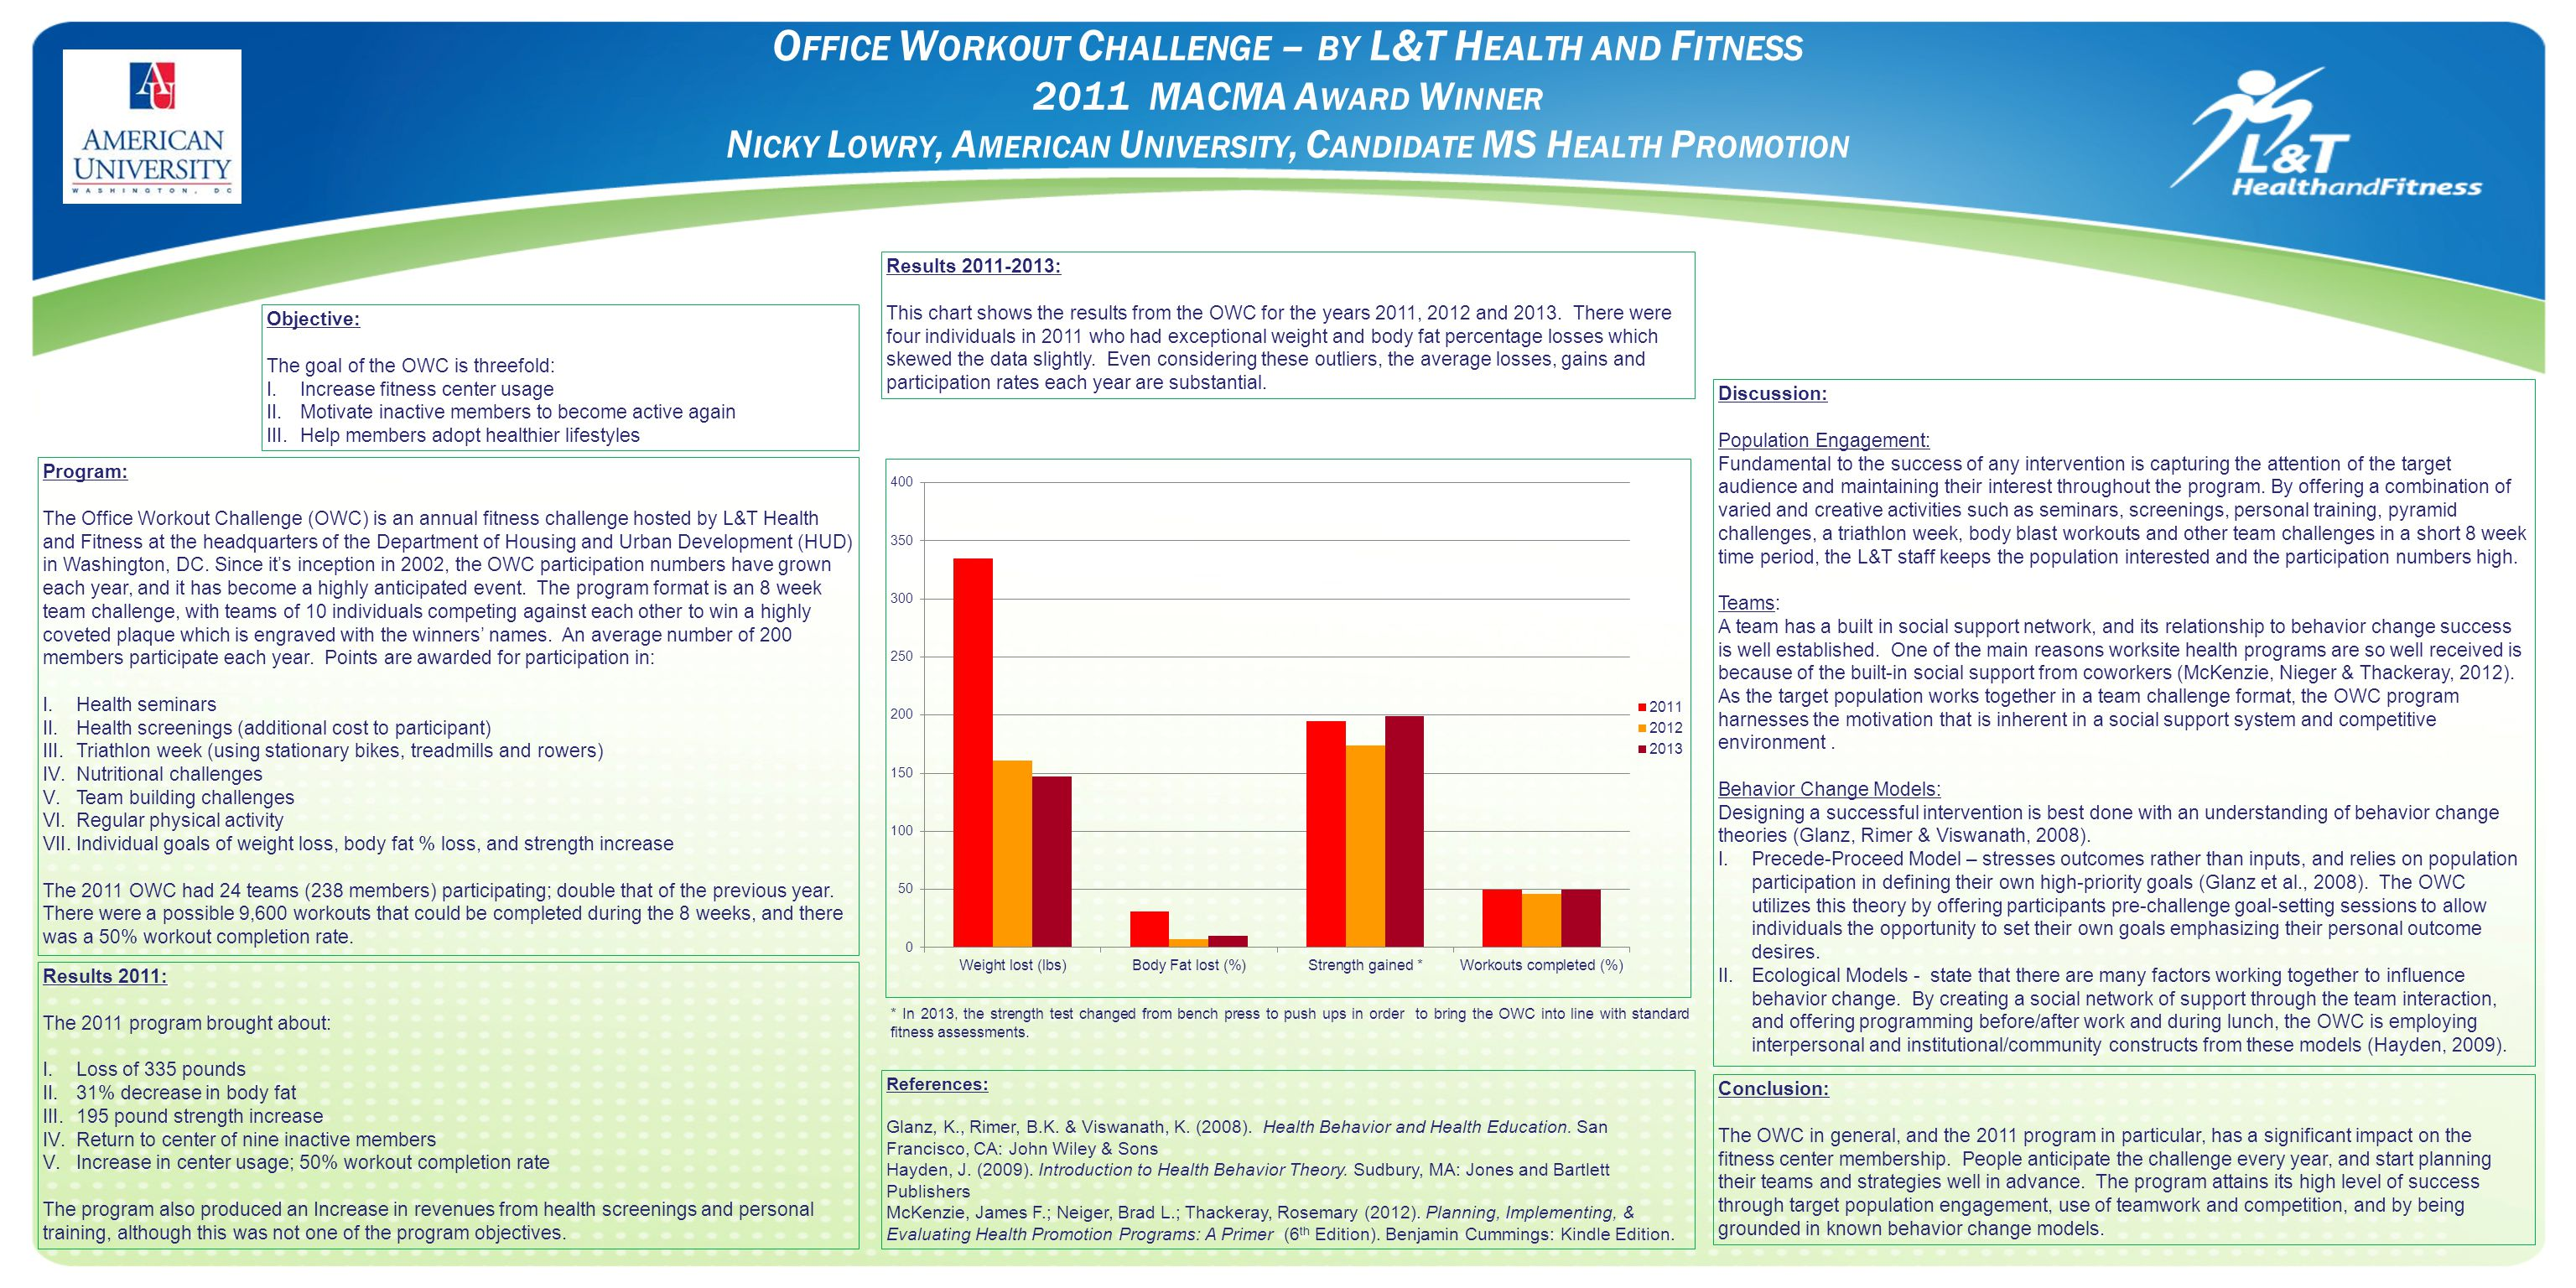 O FFICE W ORKOUT C HALLENGE – BY L&T H EALTH AND F ITNESS 2011 MACMA A WARD W INNER N ICKY L OWRY, A MERICAN U NIVERSITY, C ANDIDATE MS H EALTH P ROMOTION Program: The Office Workout Challenge (OWC) is an annual fitness challenge hosted by L&T Health and Fitness at the headquarters of the Department of Housing and Urban Development (HUD) in Washington, DC.